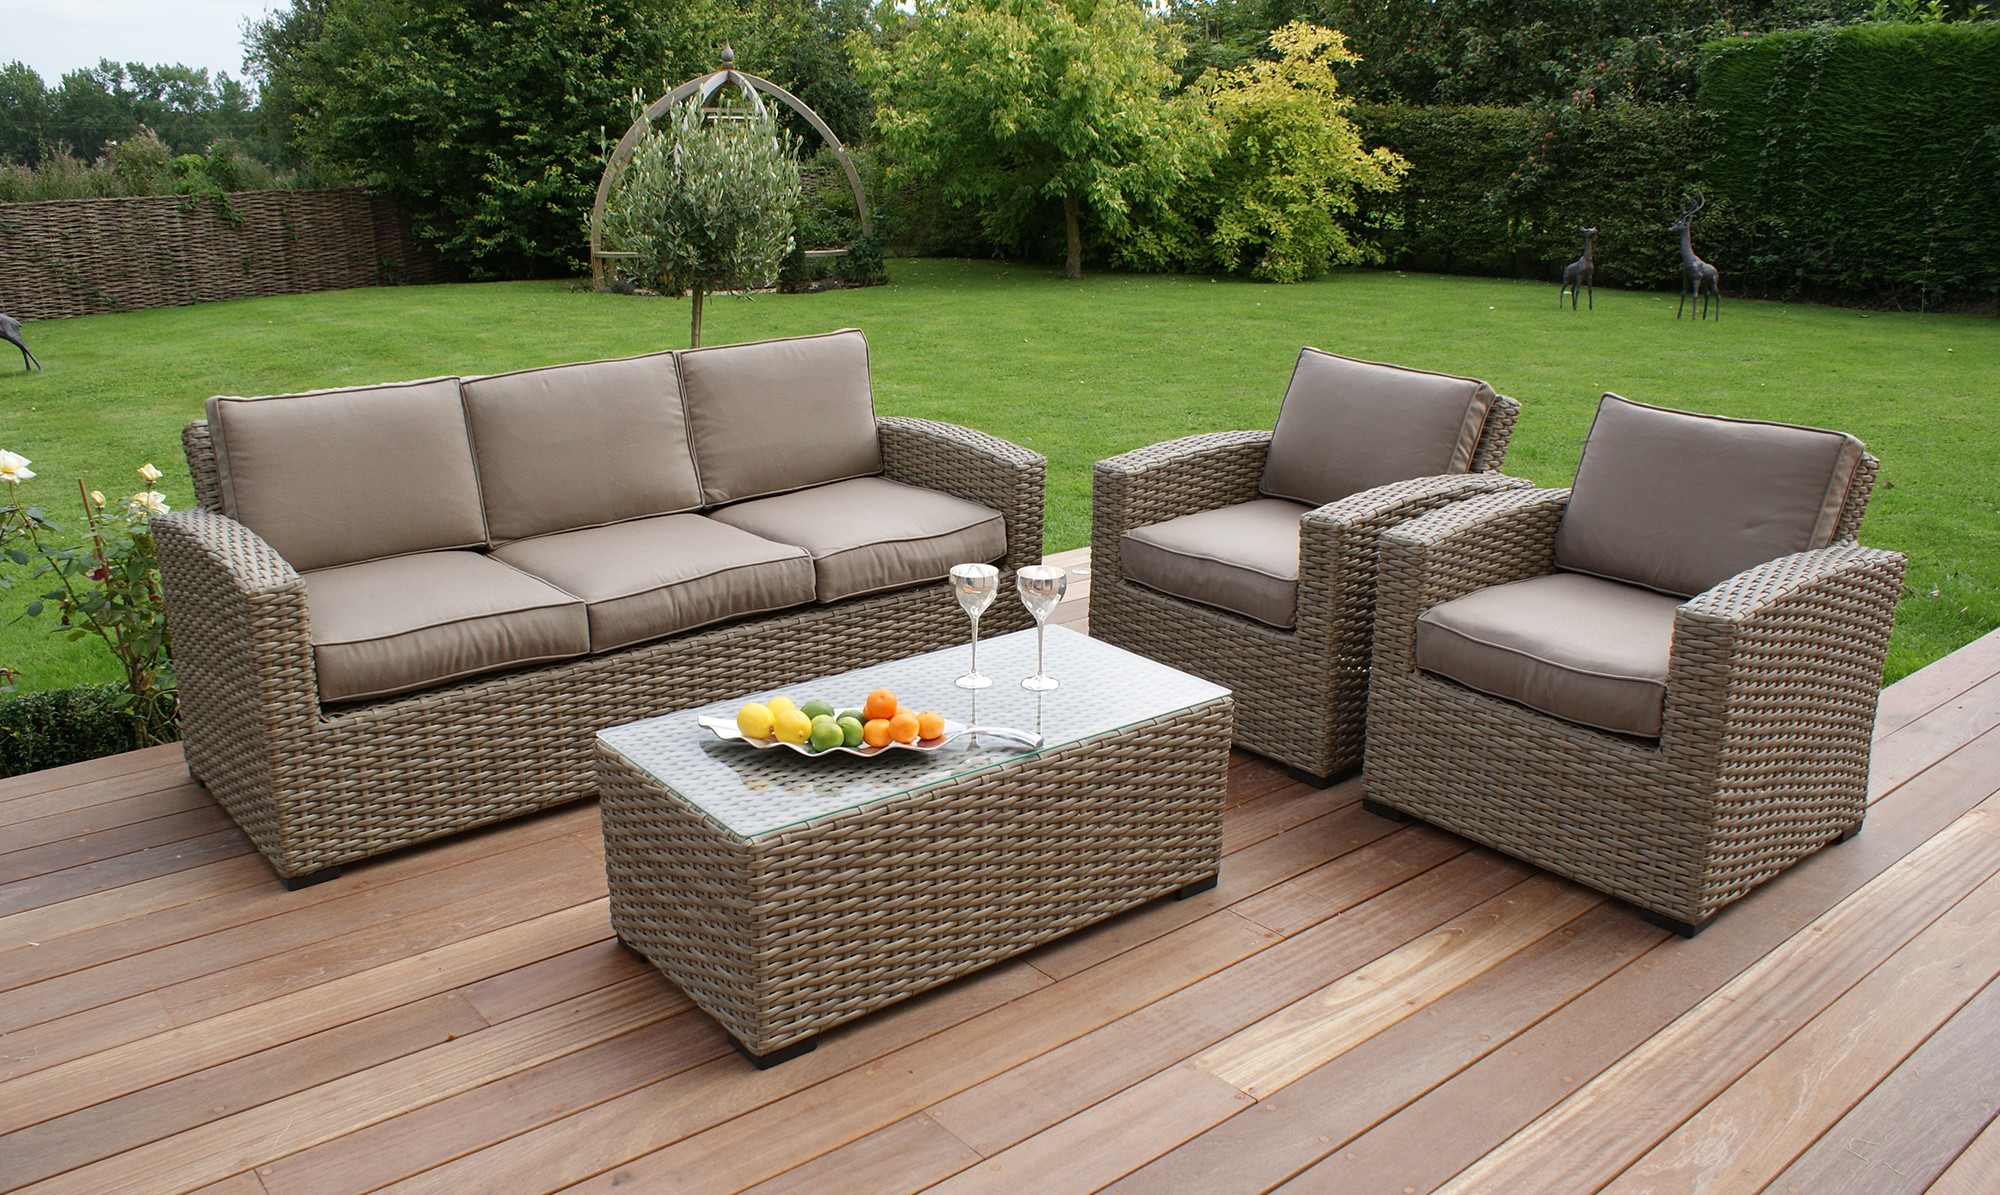 Amazing Antilles Natural 3 Seater Rattan Sofa Set - Fishpools rattan sofa set